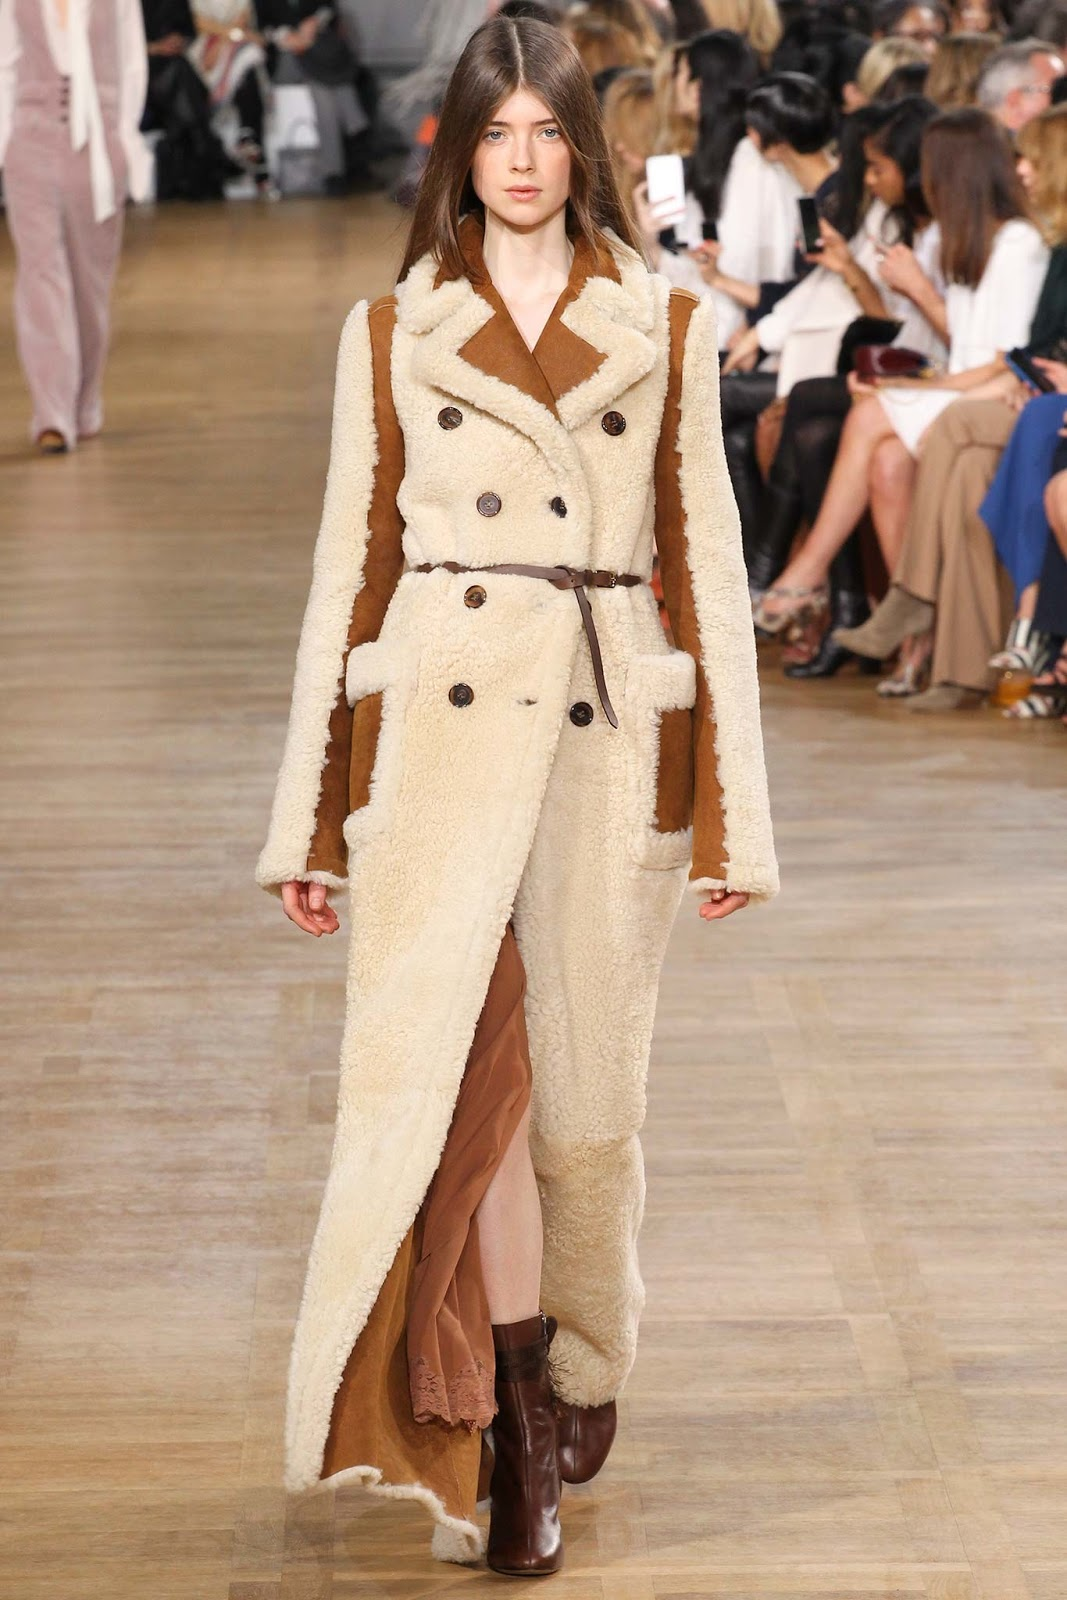 Trench coats as seen on a runway at Chloe Autumn/Winter 2015 via www.fashionedbylove.co.uk